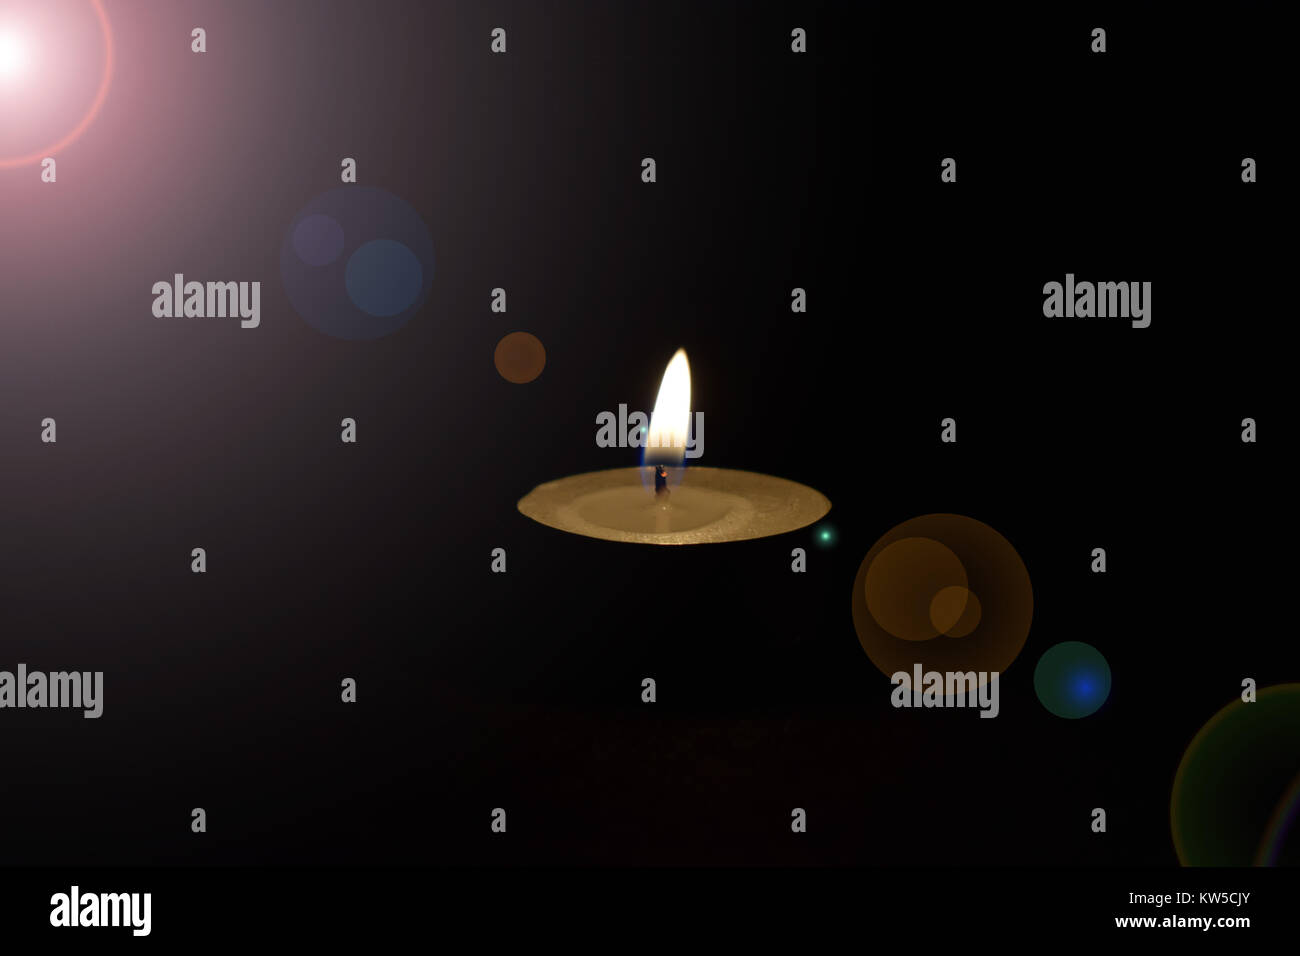 centered candle light on the black background with lens flare - Stock Image